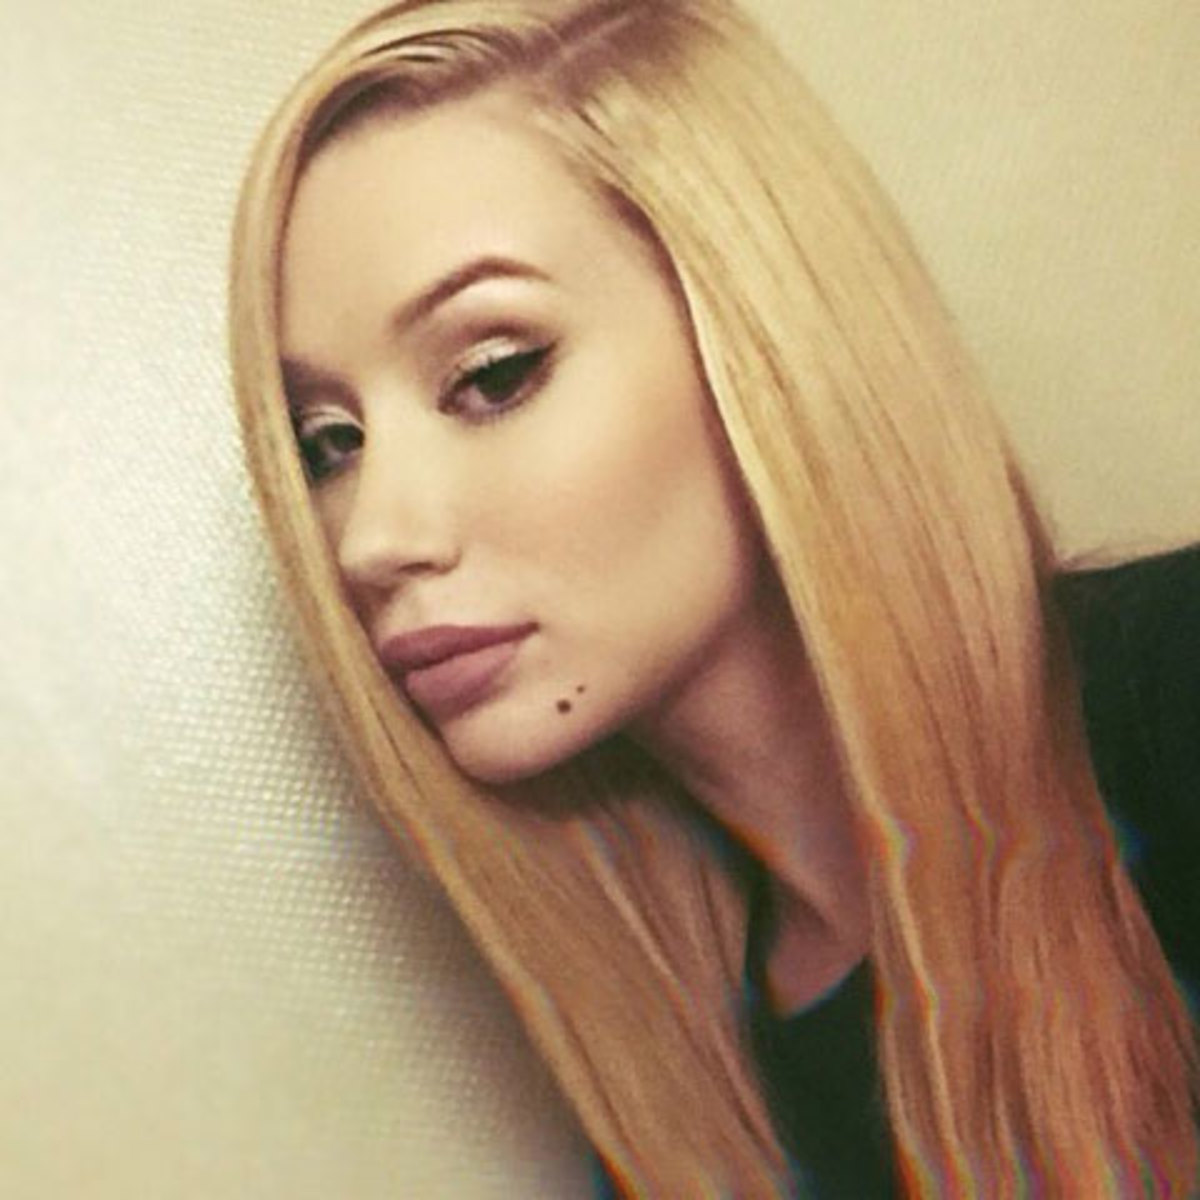 iggy-azalea-admits-going-crazy.jpg